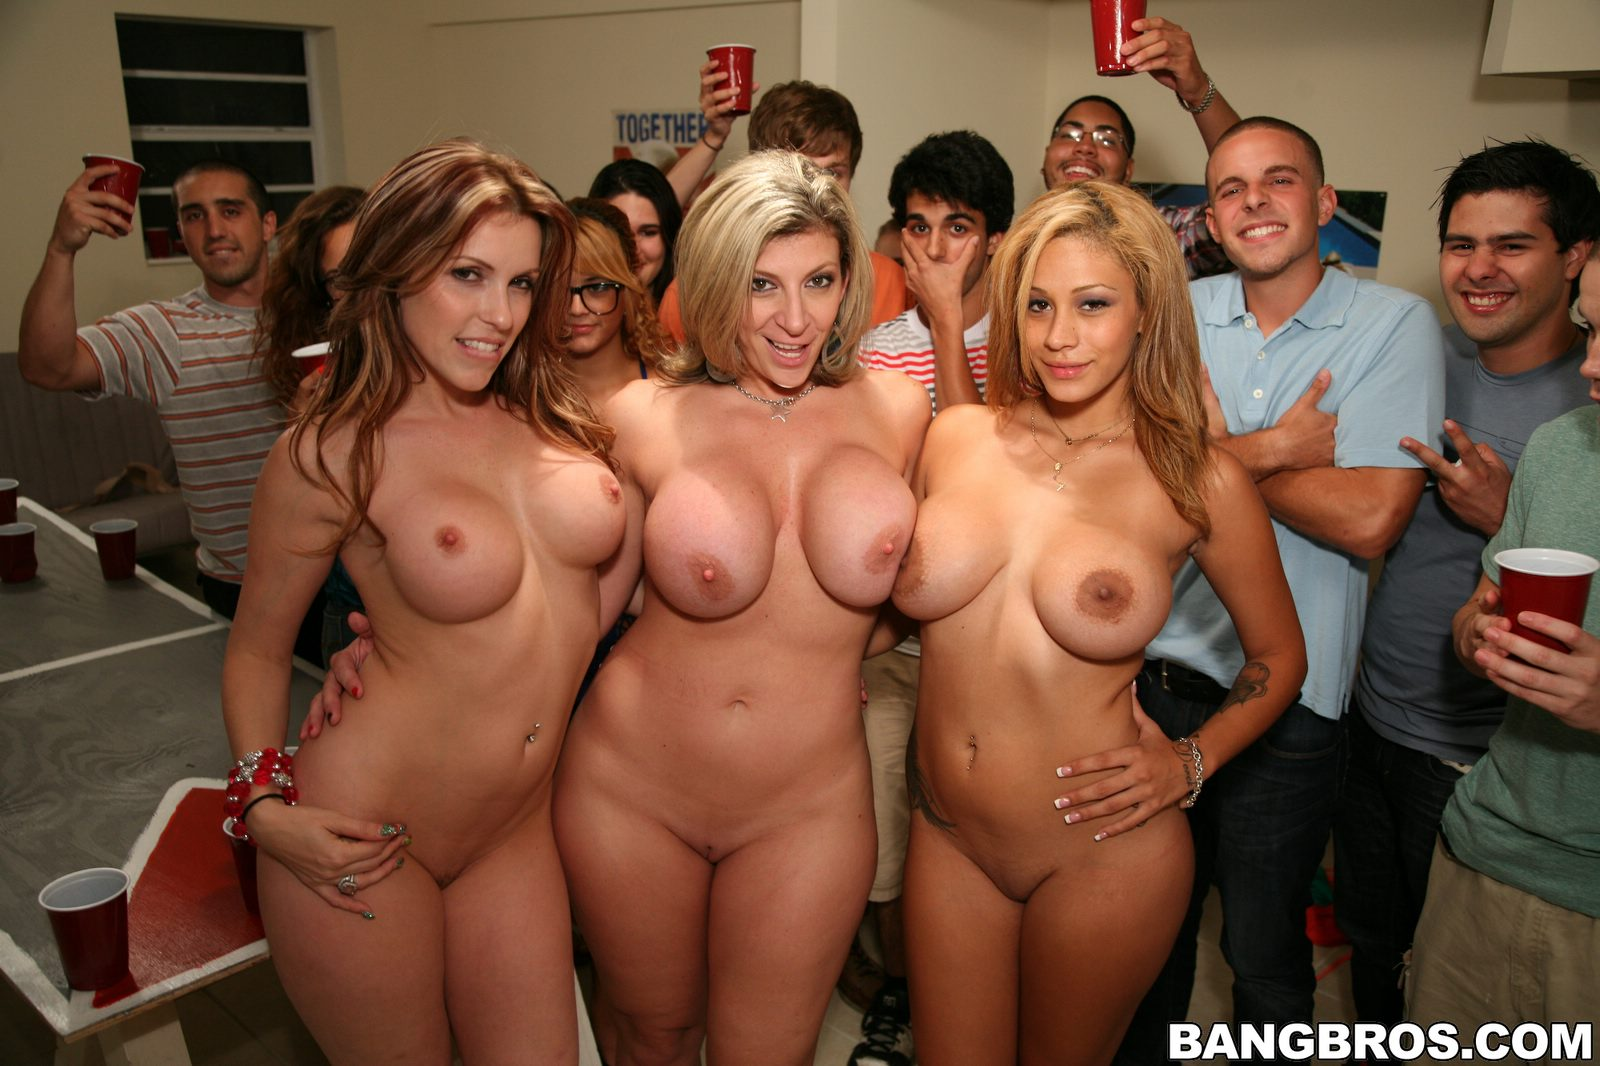 Porn star frat party